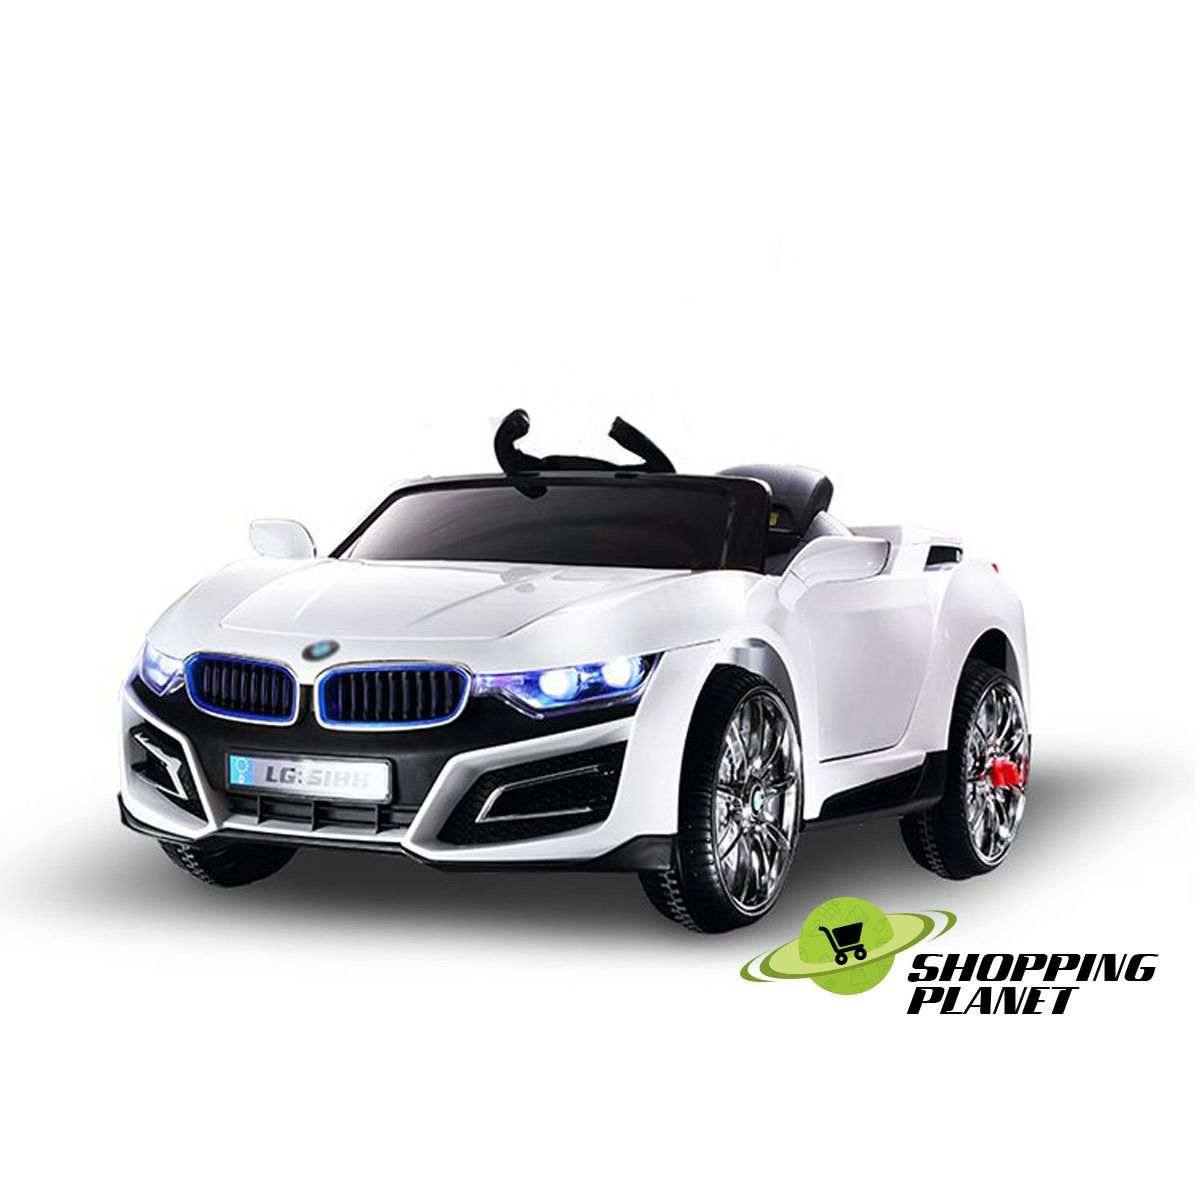 BMW LG-5188 Chargeable Battery Car for Kids